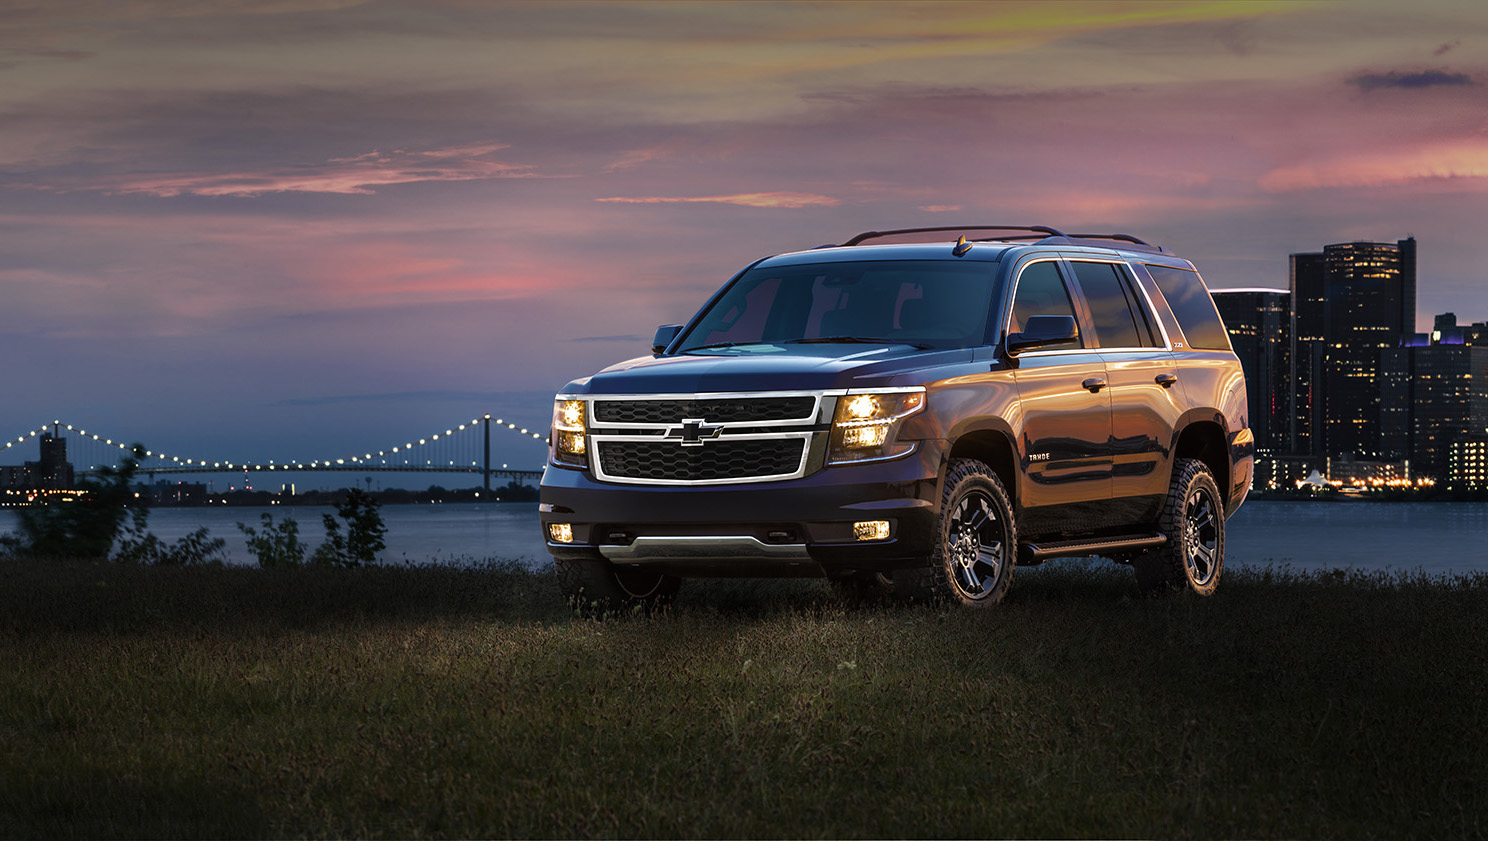 2017 Chevy Tahoe and Suburban Midnight Edition Models ...